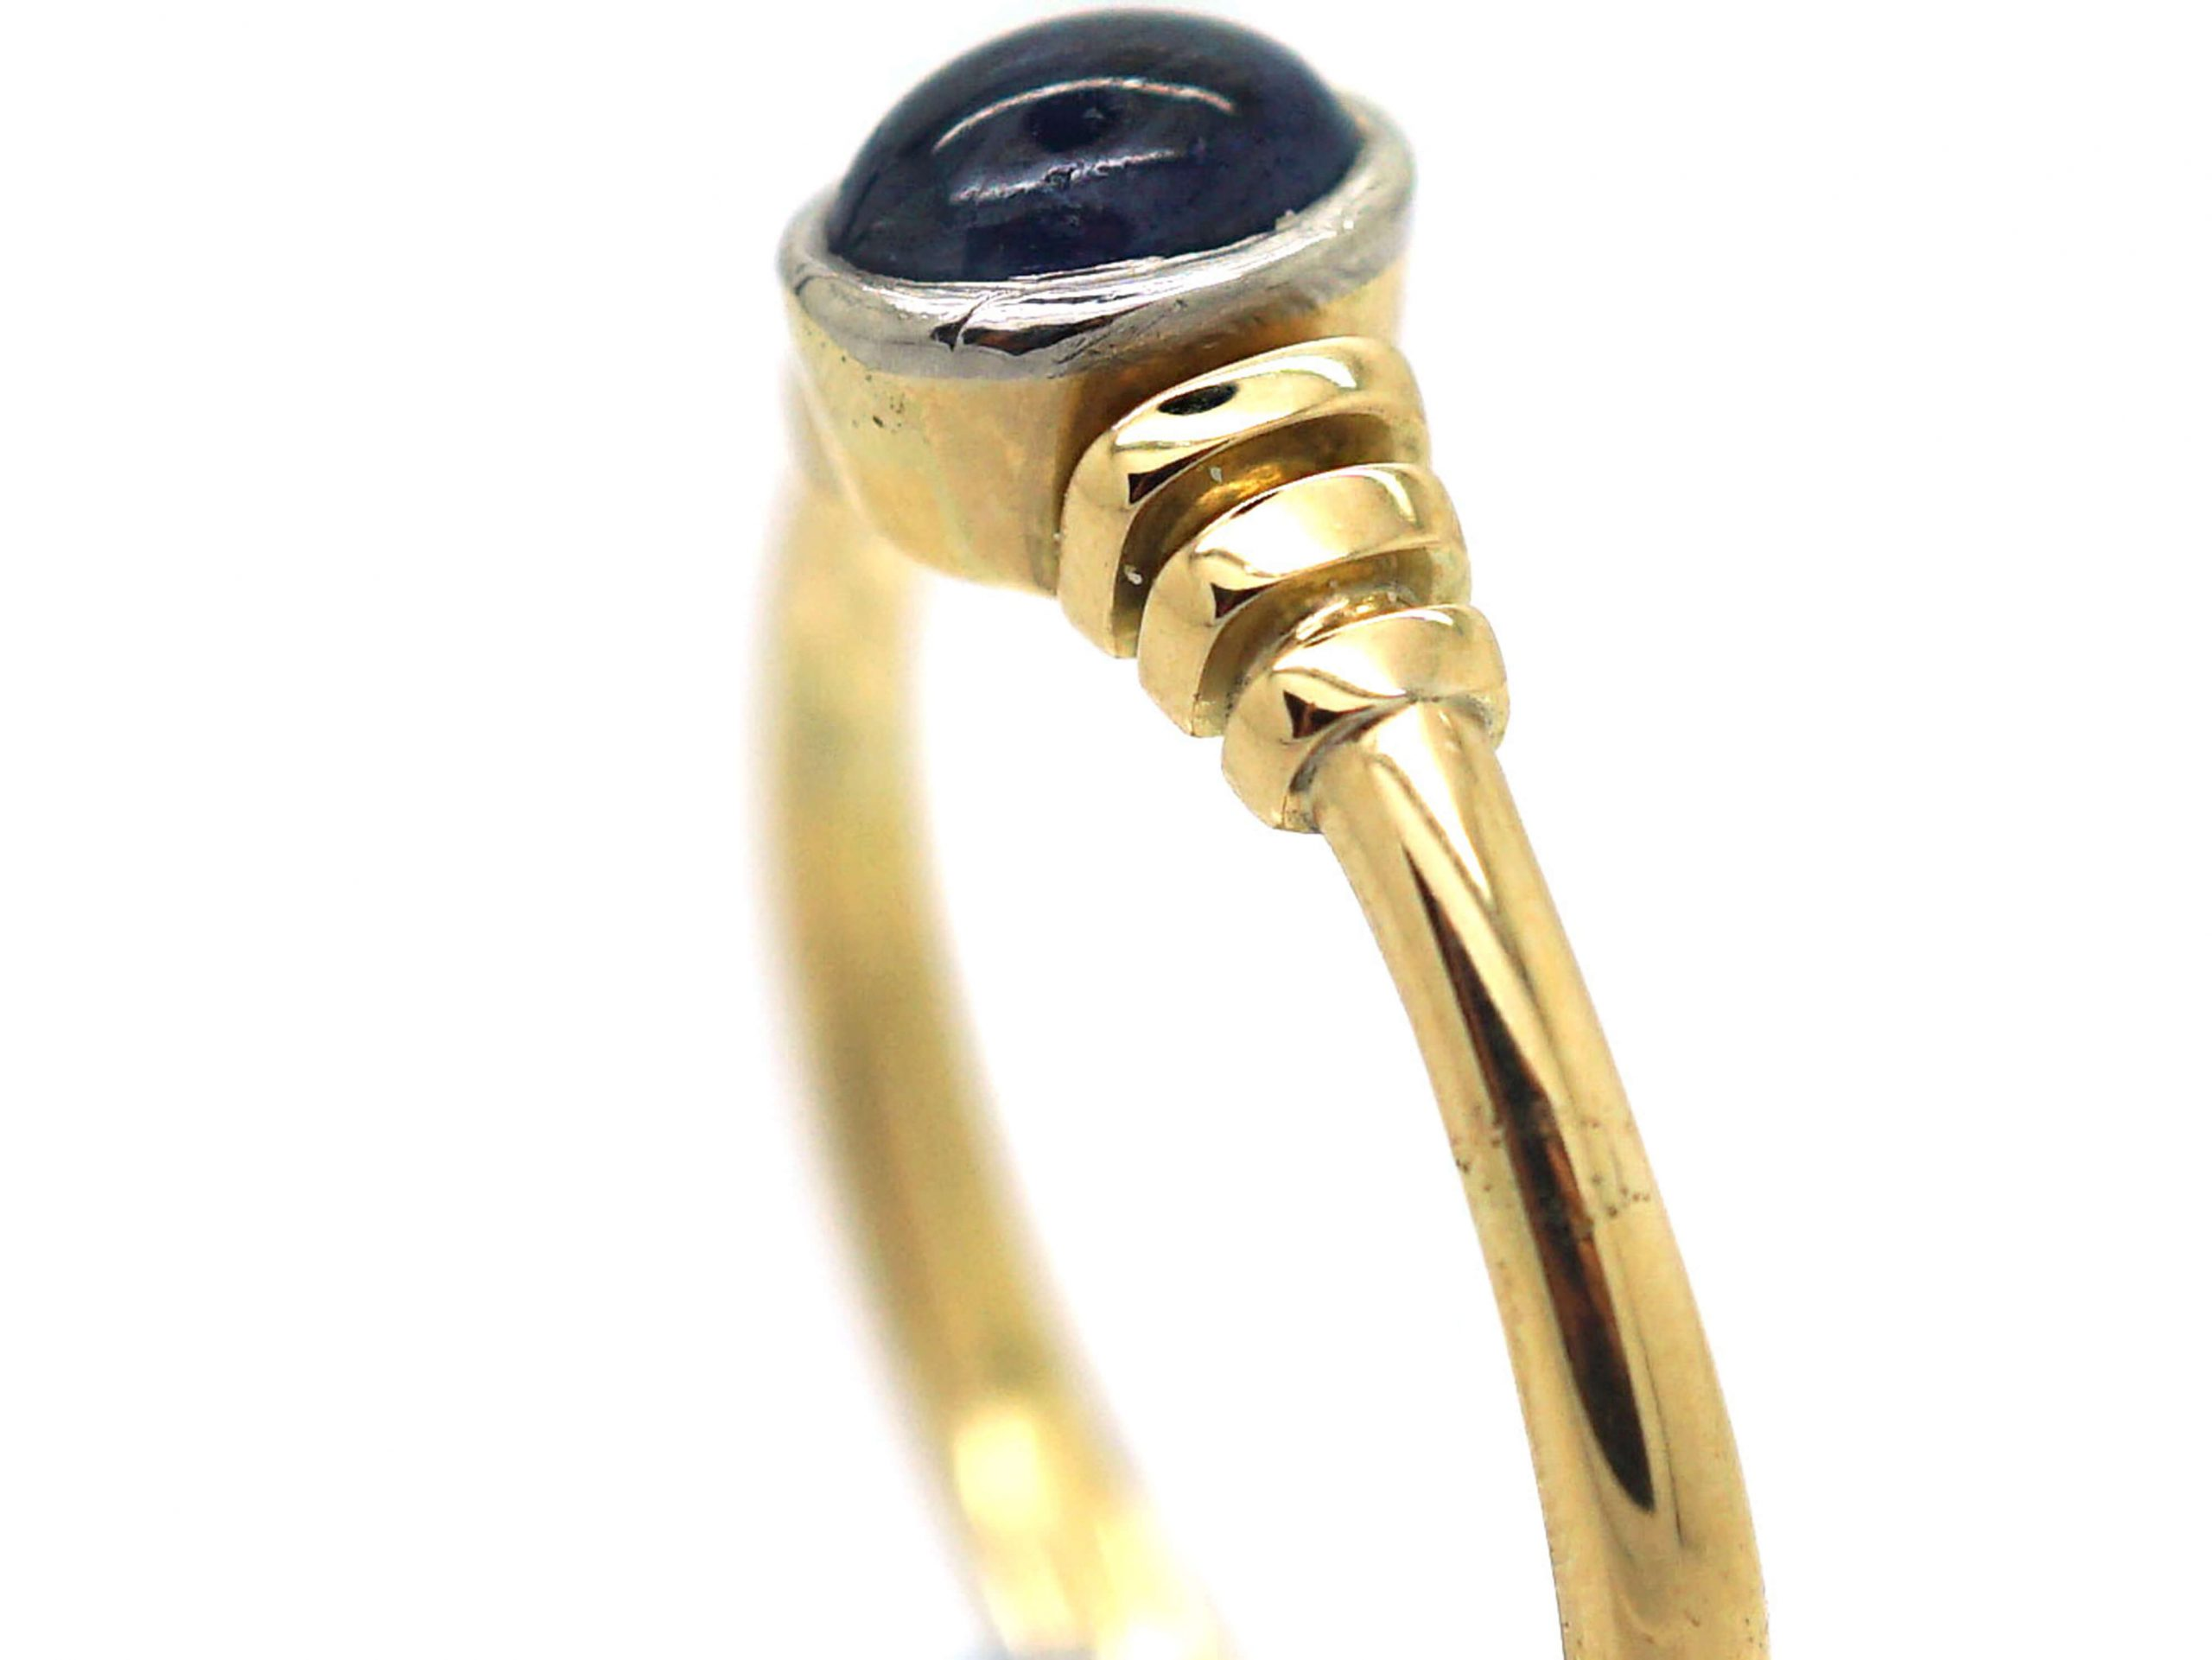 18ct Gold Sapphire Cabochon Single Stone Ring With Vertical Grooved Shoulders